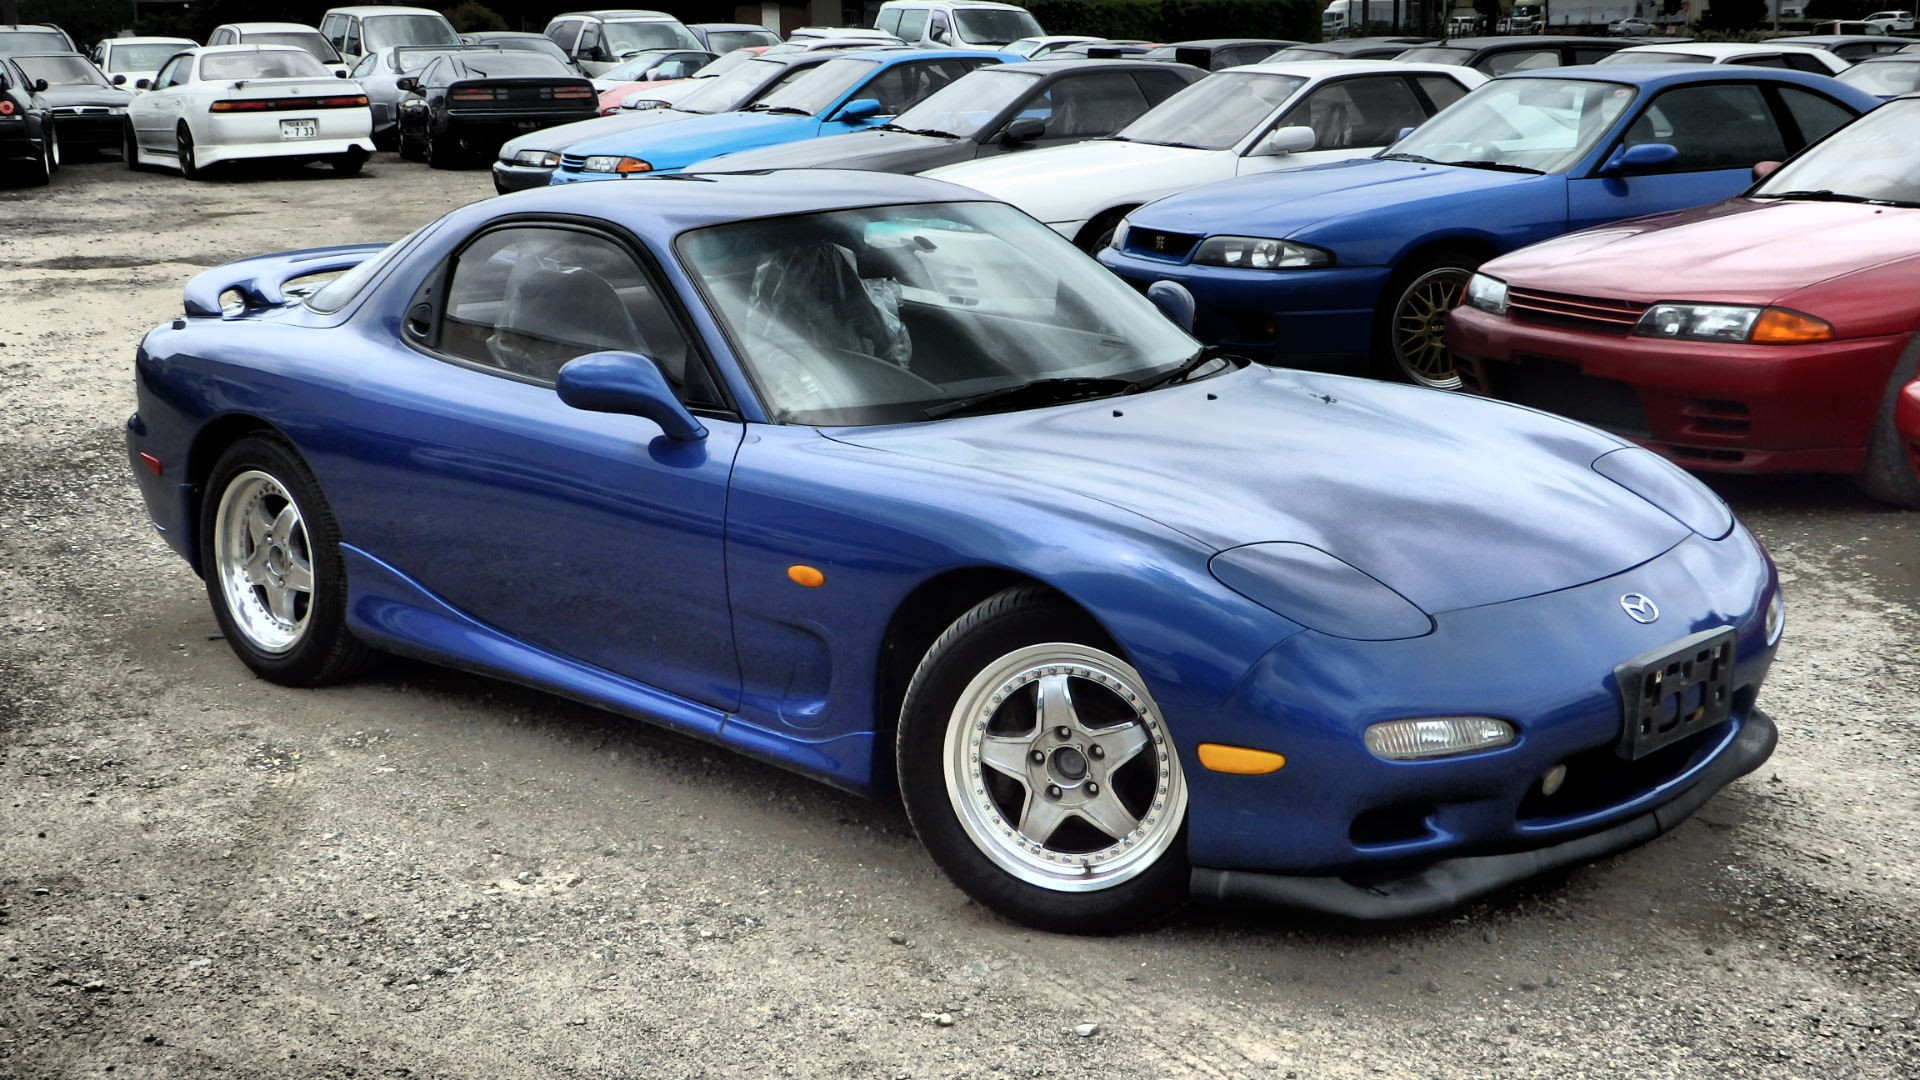 1990 Mazda Rx 7 Engine Diagram Ultimate Fd Buyers Guide Garage Dreams It Was Also Sold Under Mazdas Luxury Brand Fini As The Operated Between 1991